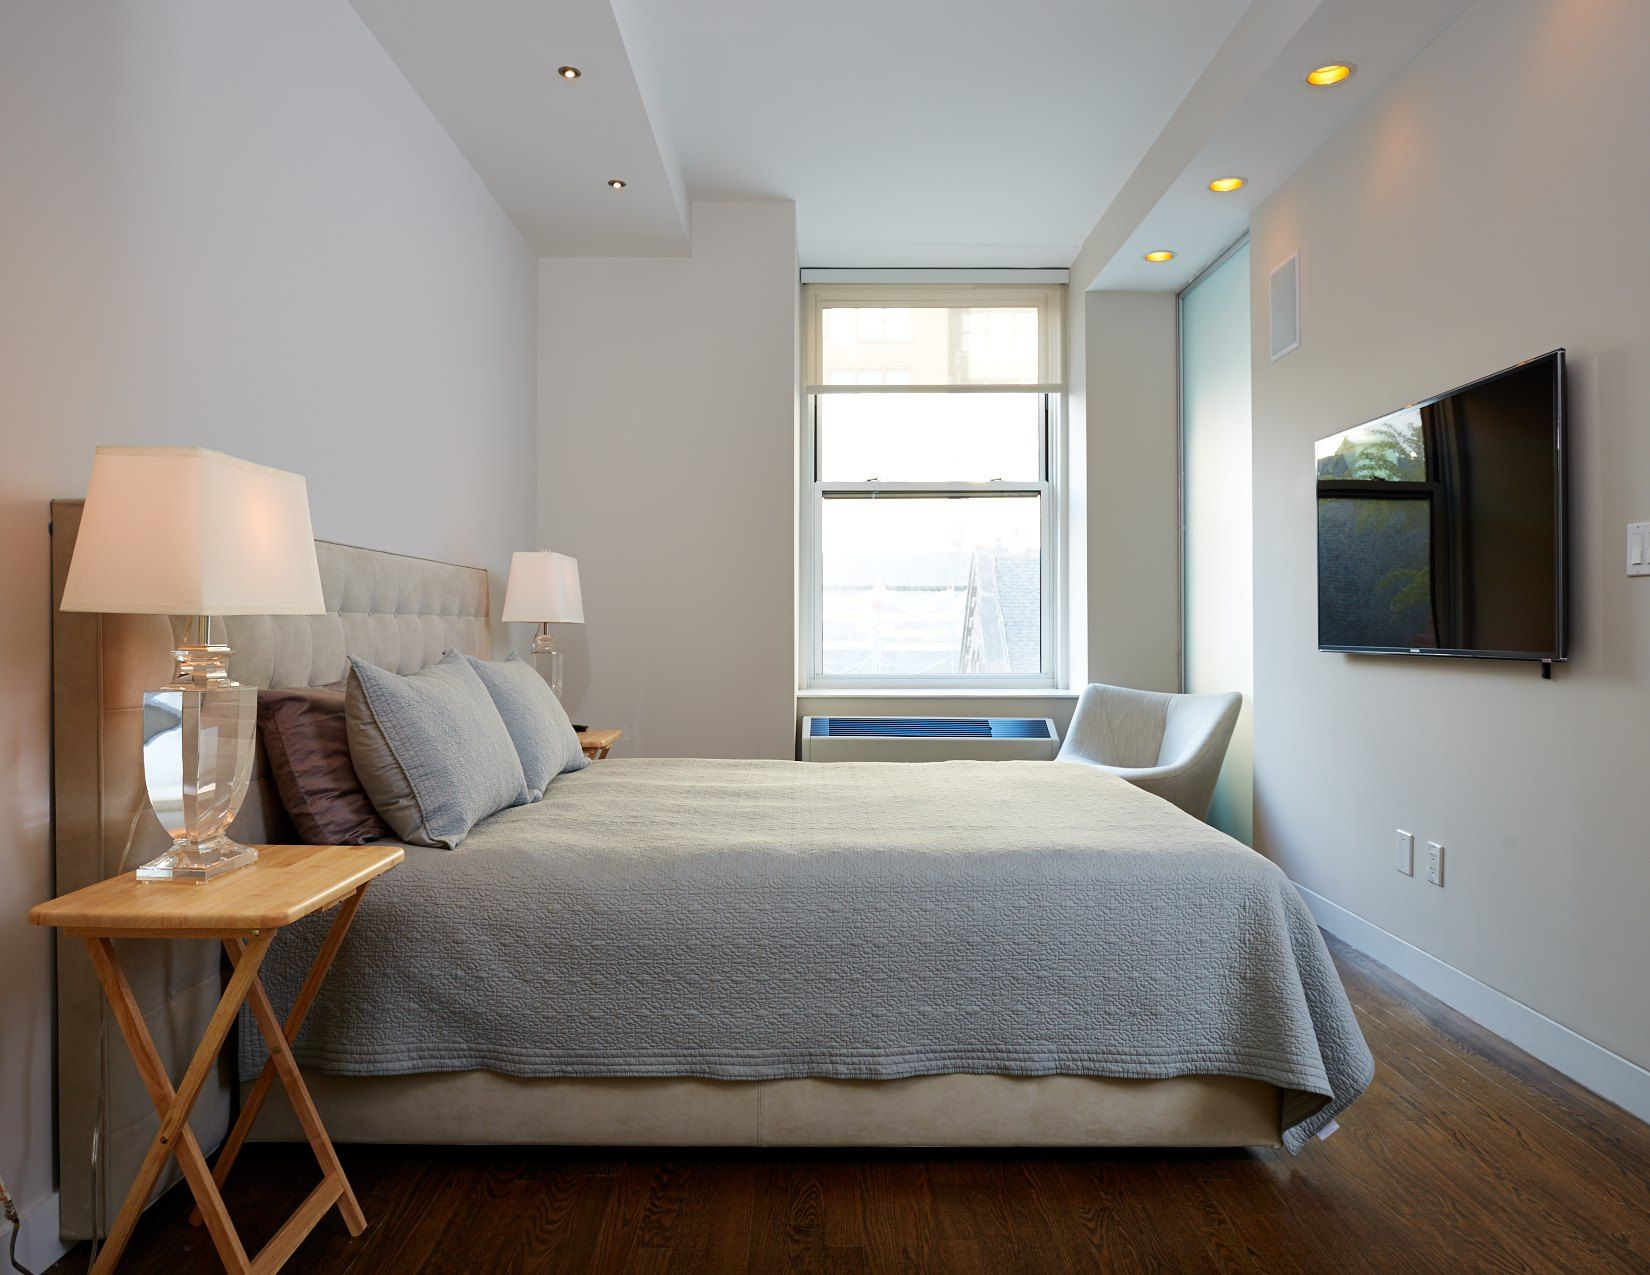 Lit Palette Design Palette Architecture The Fairly Compact Bedroom Is Brightly Lit